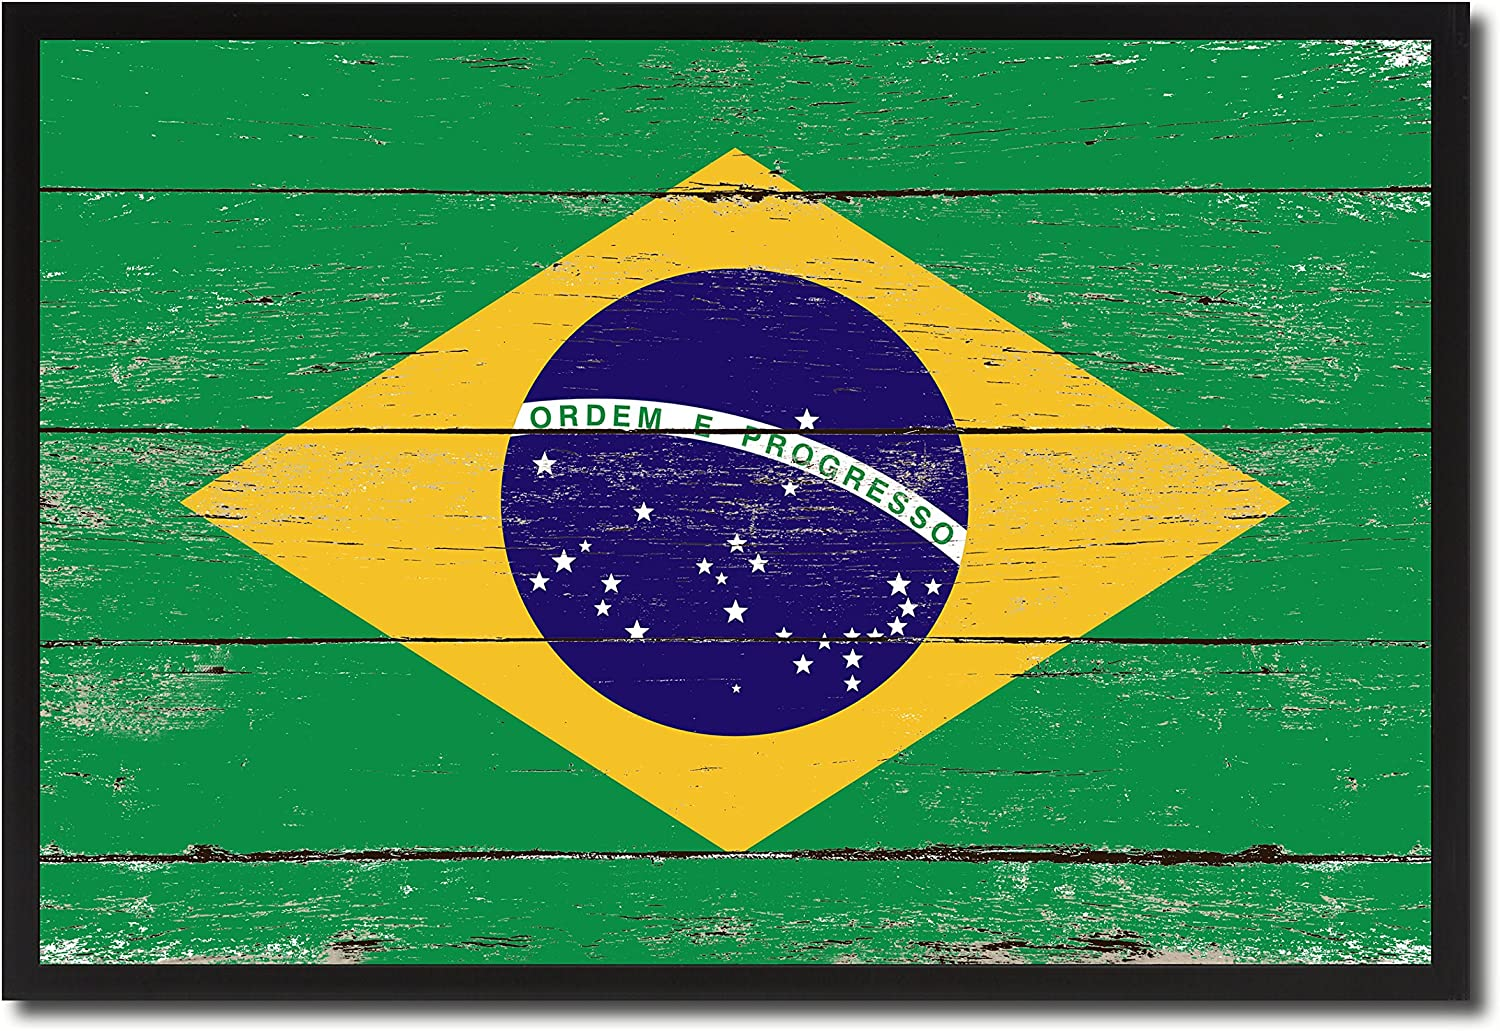 Brazil National Country Flag Shabby Chic Wall Art Home Decor Office Decoration Souvenir Gift Ideas Housewarming 19 X 28 Amazon Co Uk Kitchen Home